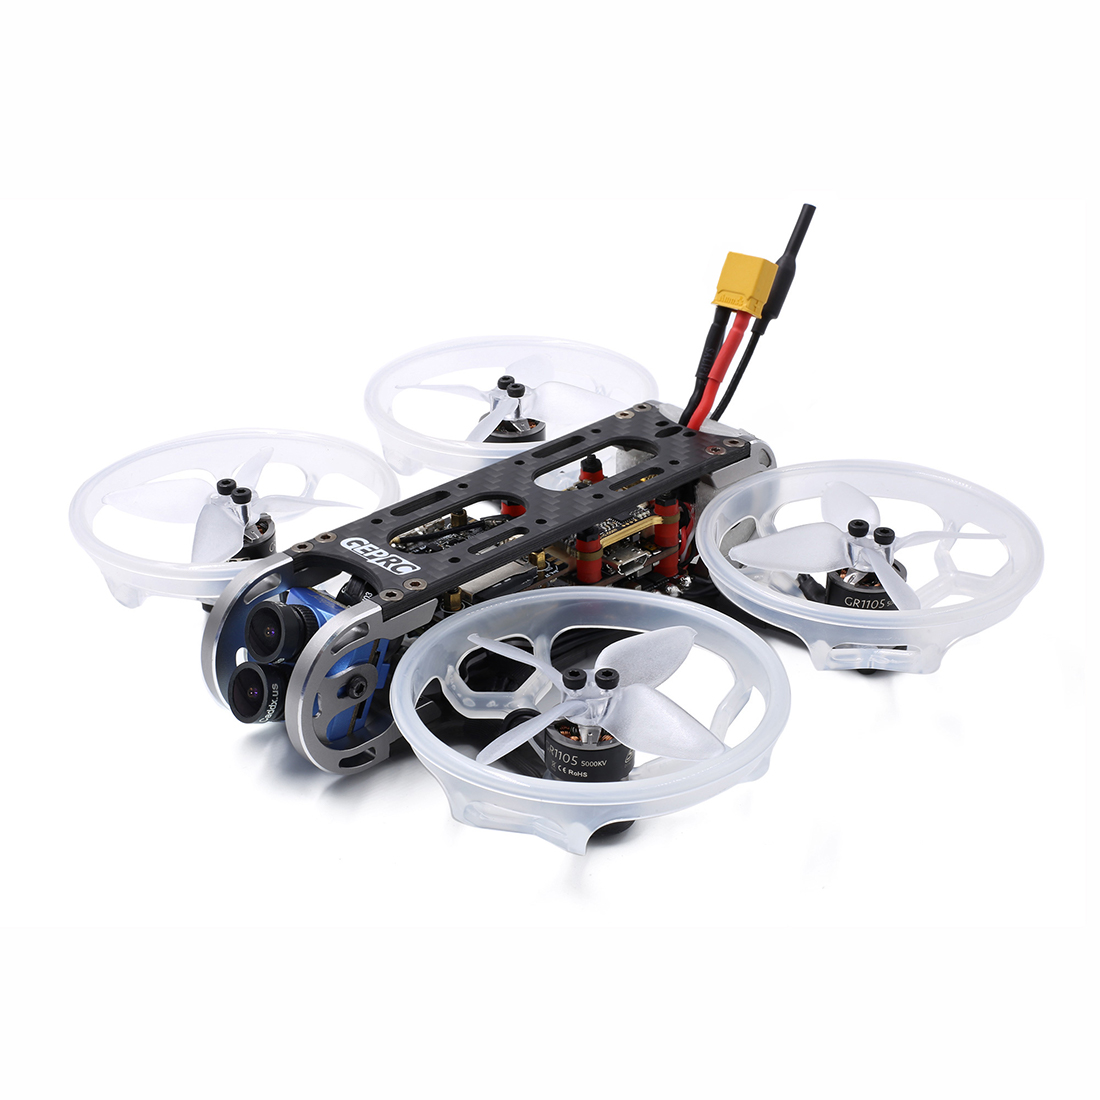 Image 4 - GEPRC CinePro 4K BNF/PNP FPV Racing Drone 4S Compatiable with F722/F405 Flight Controller 115mm 5.8g 48CH 500mW VTX-in Parts & Accessories from Toys & Hobbies